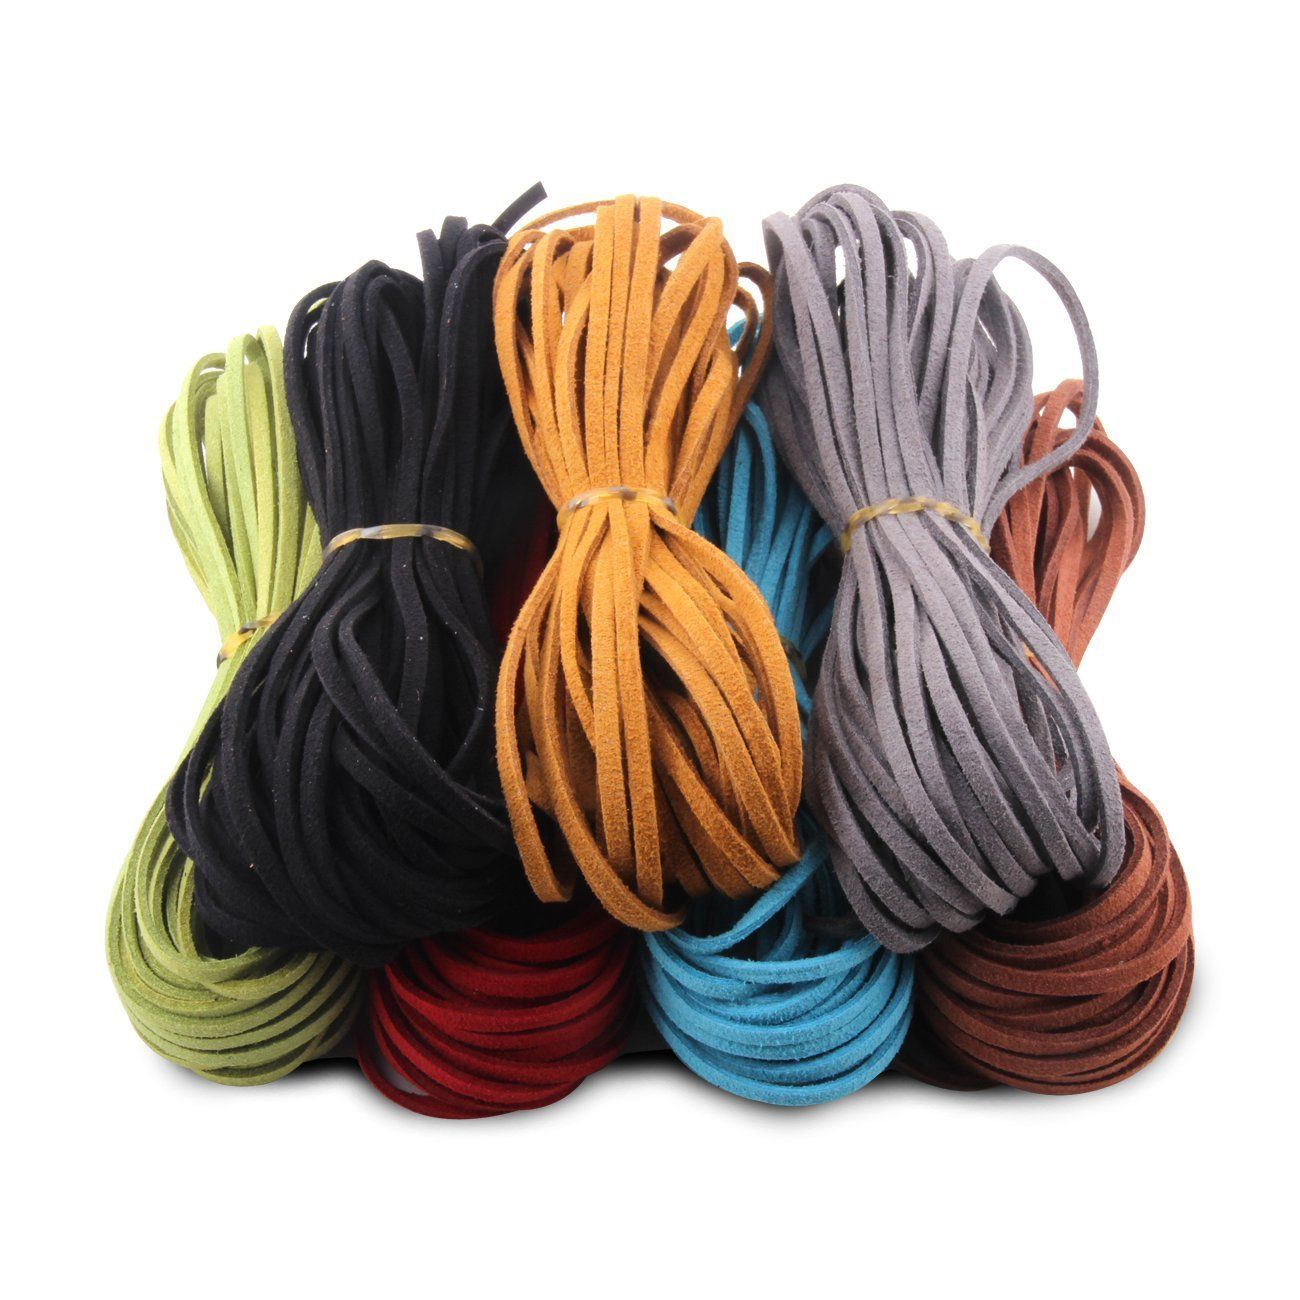 Arts /& Craft Accessories Weddecor 100m x 1mm Black Cord Trim Elastic Jwellery Making Smooth Finish Sewing Thread for Knitting Clothing